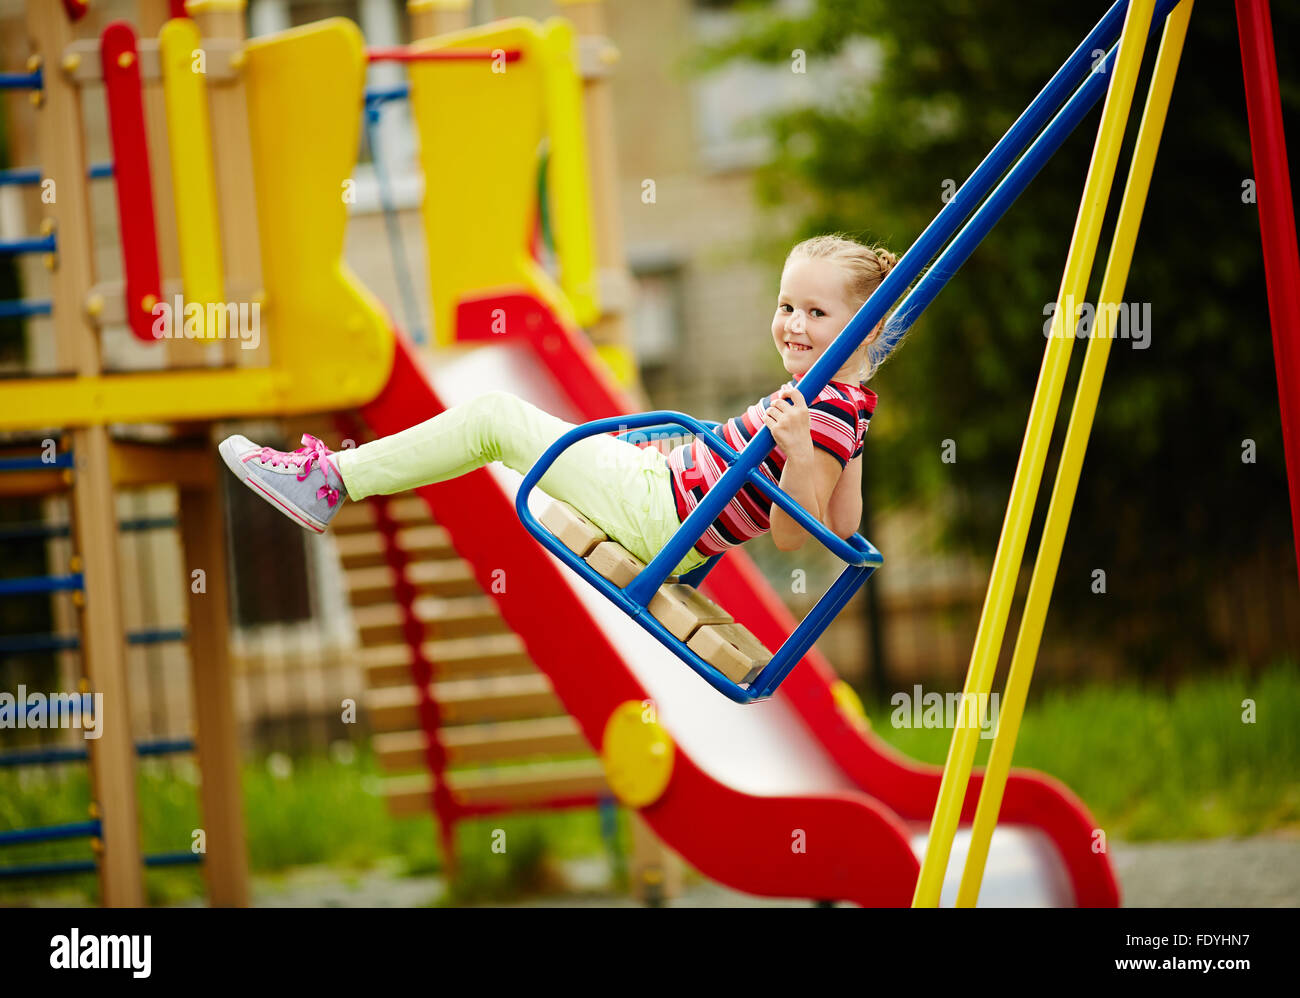 Little girl looking at camera while swinging on playground area - Stock Image